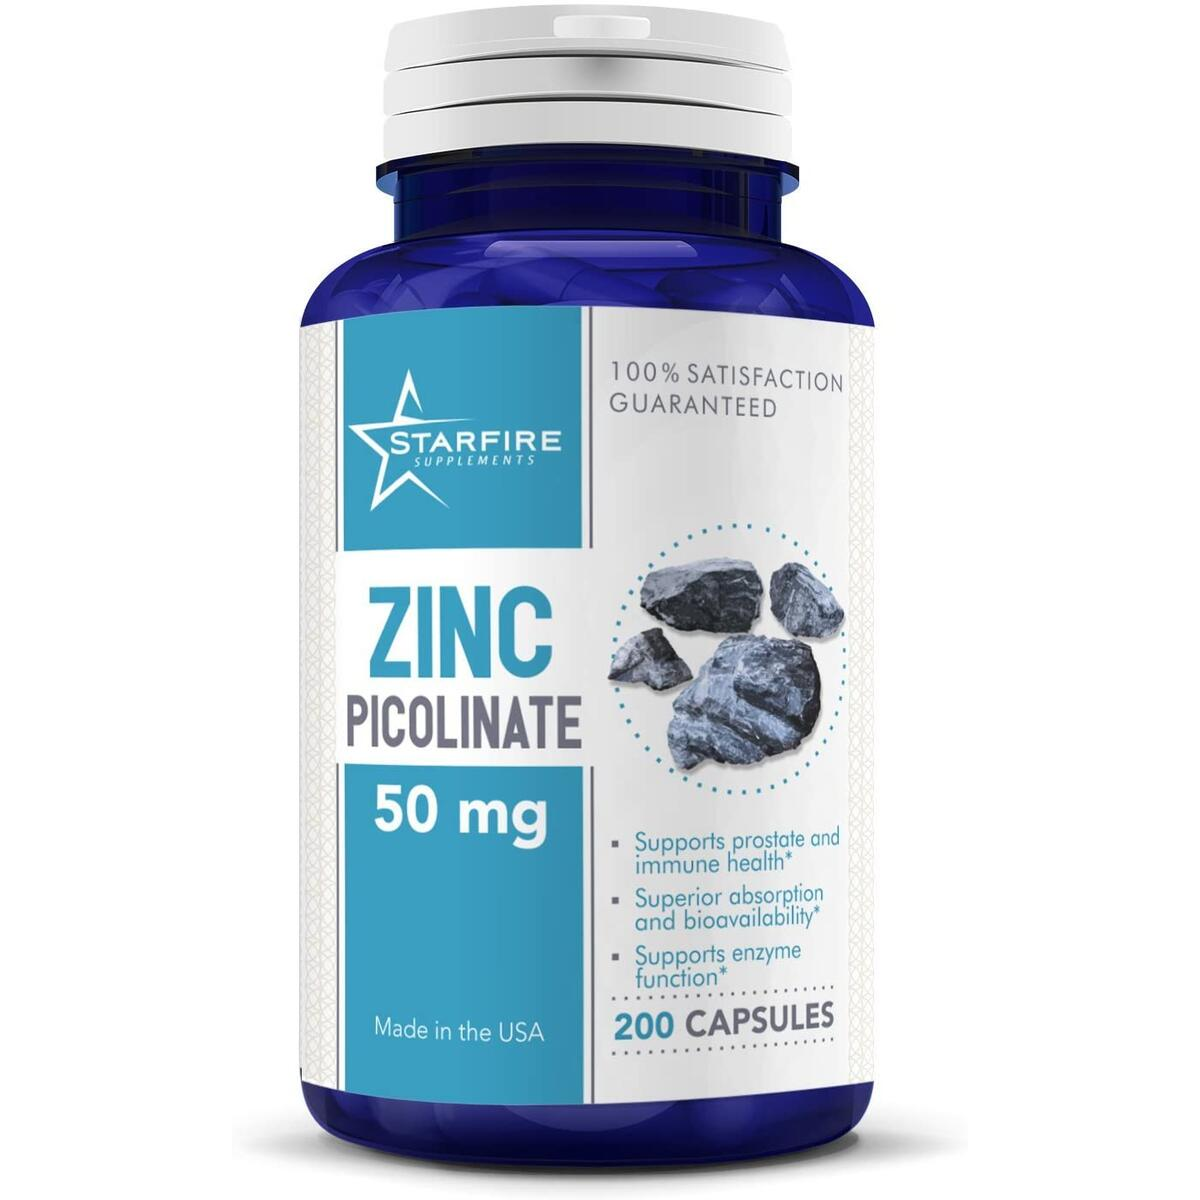 Starfire Supplements Zinc Picolinate 50mg 200 capsules